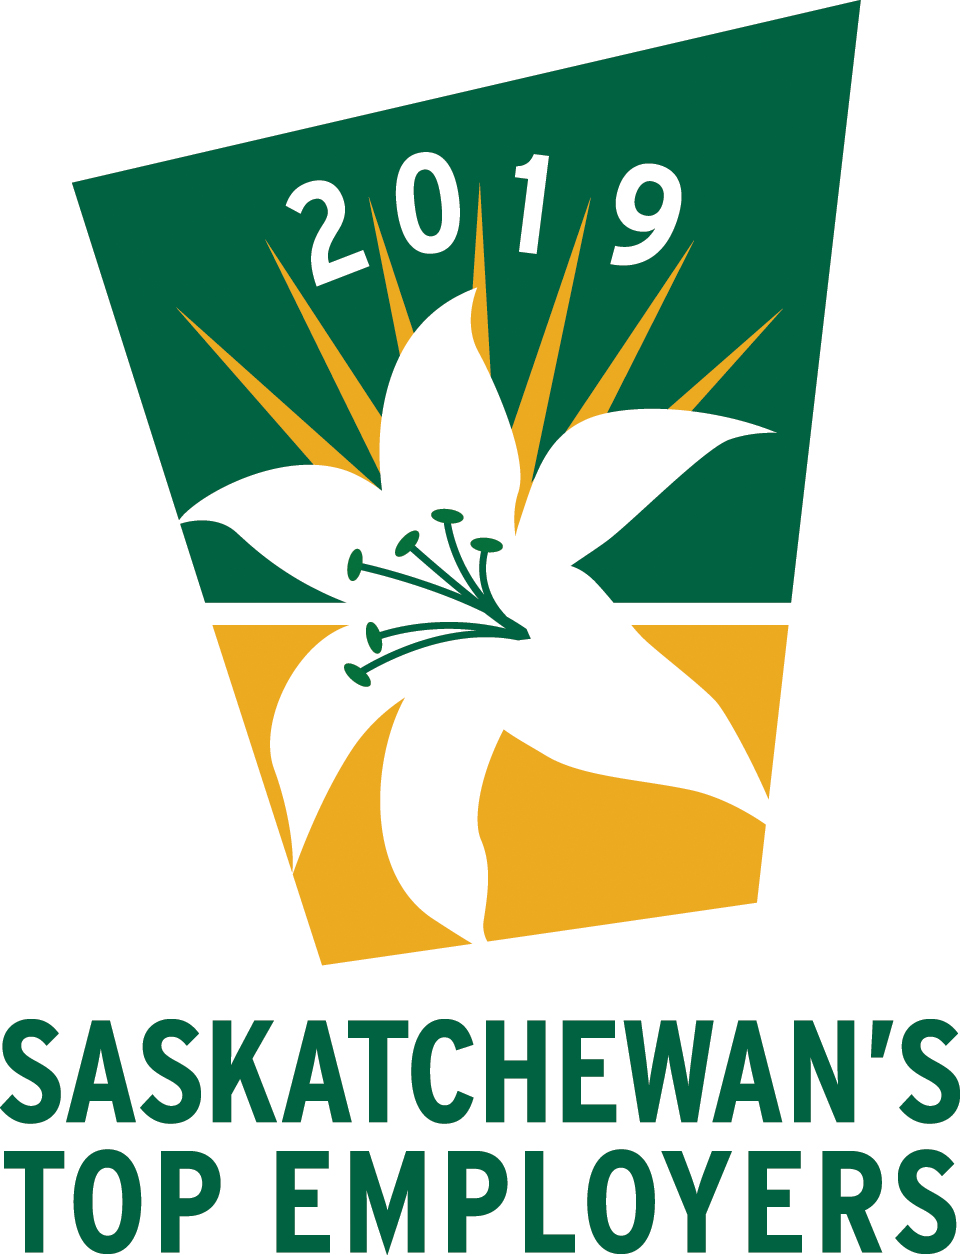 sask top employers logo 2019